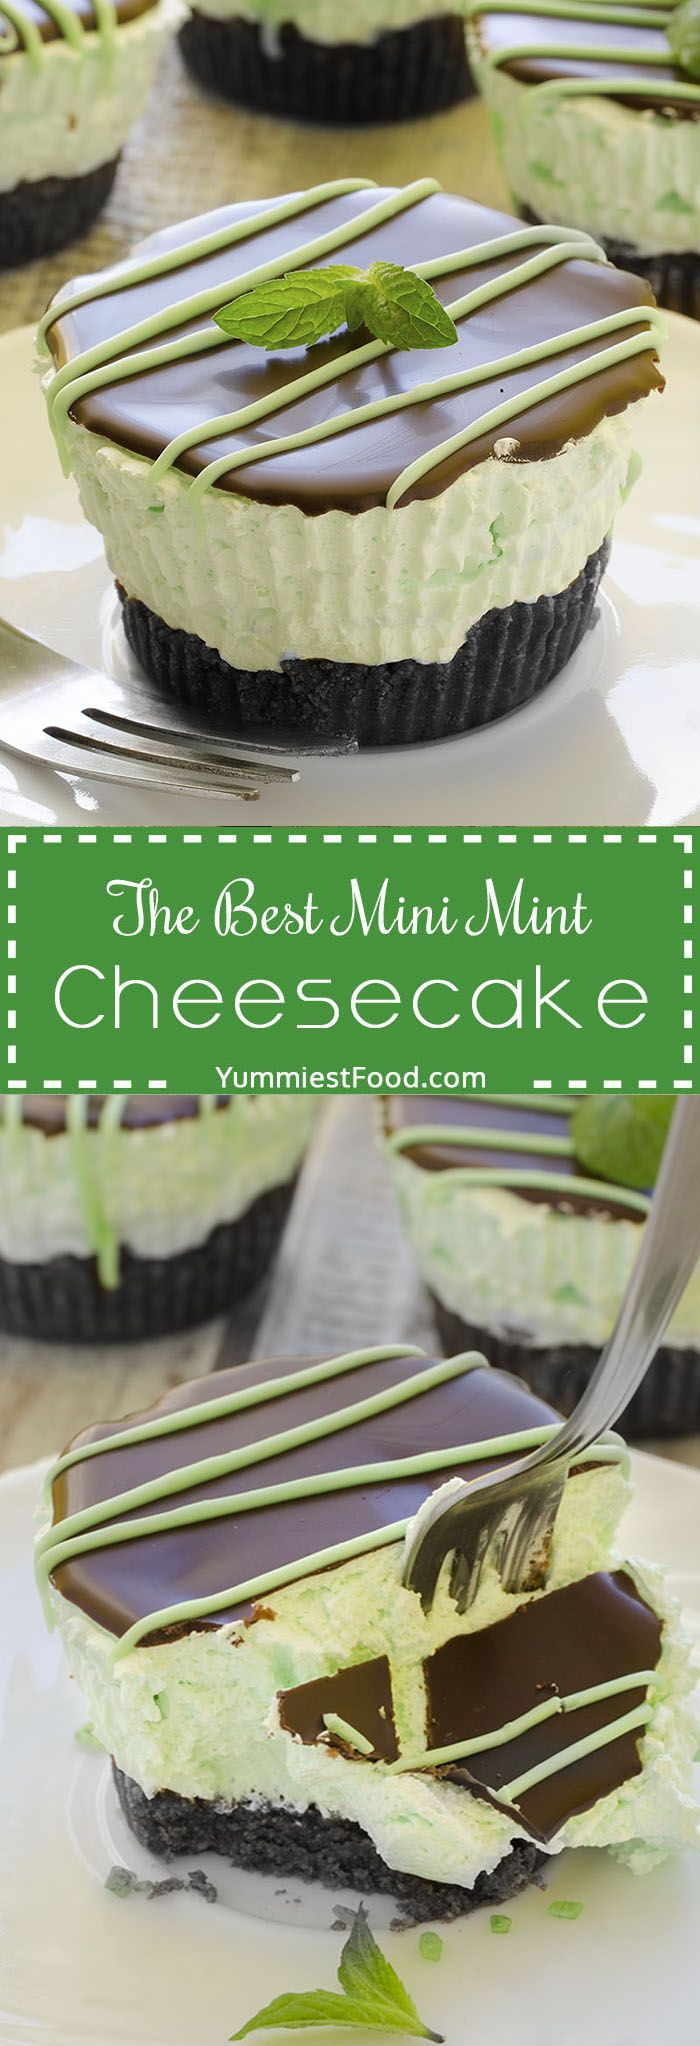 The Best Mini Mint Cheesecake – so easy to make, creamy and cute! Absolutely delicious, The Best Mini Mint Cheesecake with an Oreo crust and only a few ingredients!